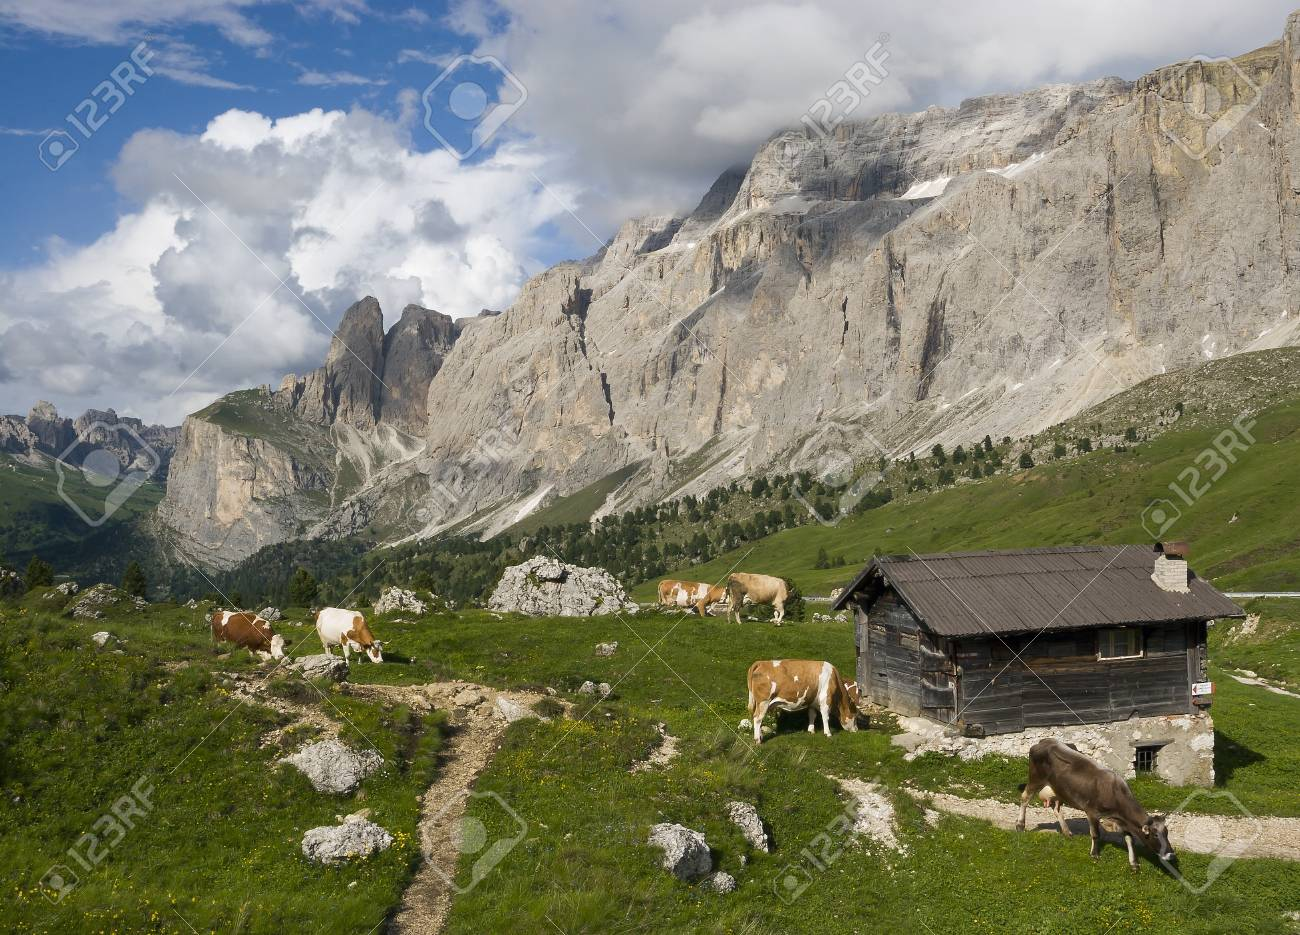 European alps, Italian Dolomites Panorama during a bright blue summer day. Stock Photo - 18019111